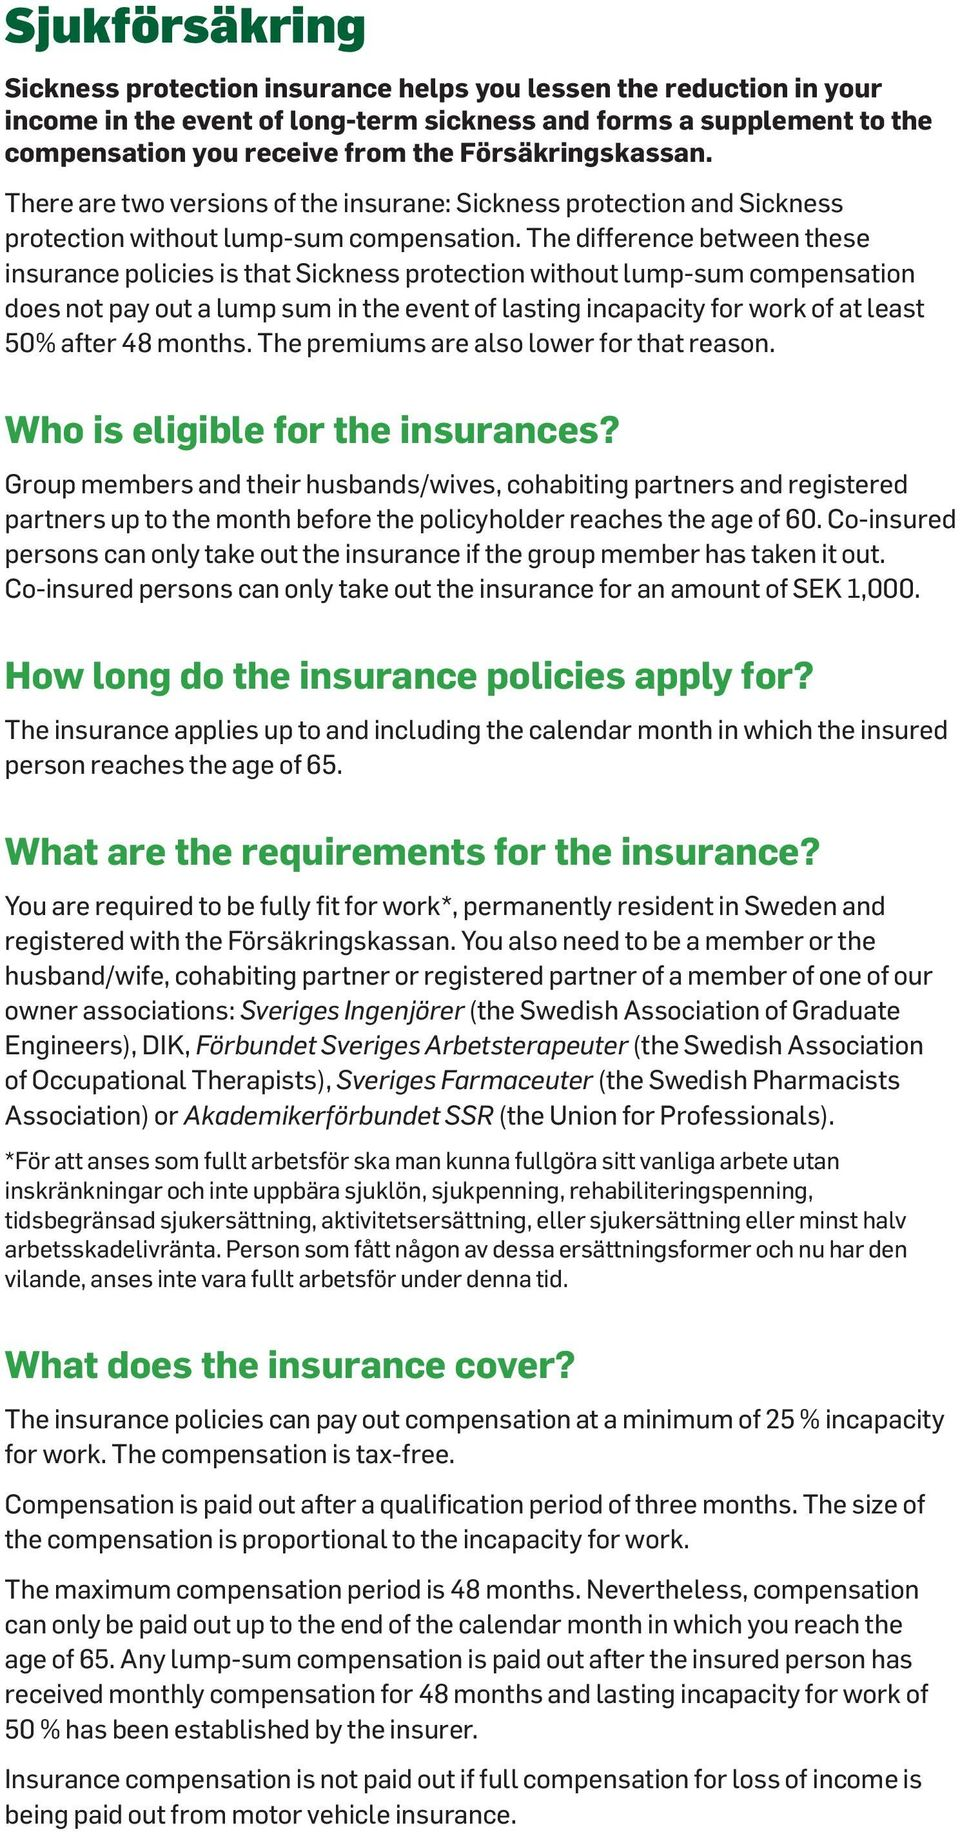 The difference between these insurance policies is that Sickness protection without lump-sum compensation does not pay out a lump sum in the event of lasting incapacity for work of at least 50% after